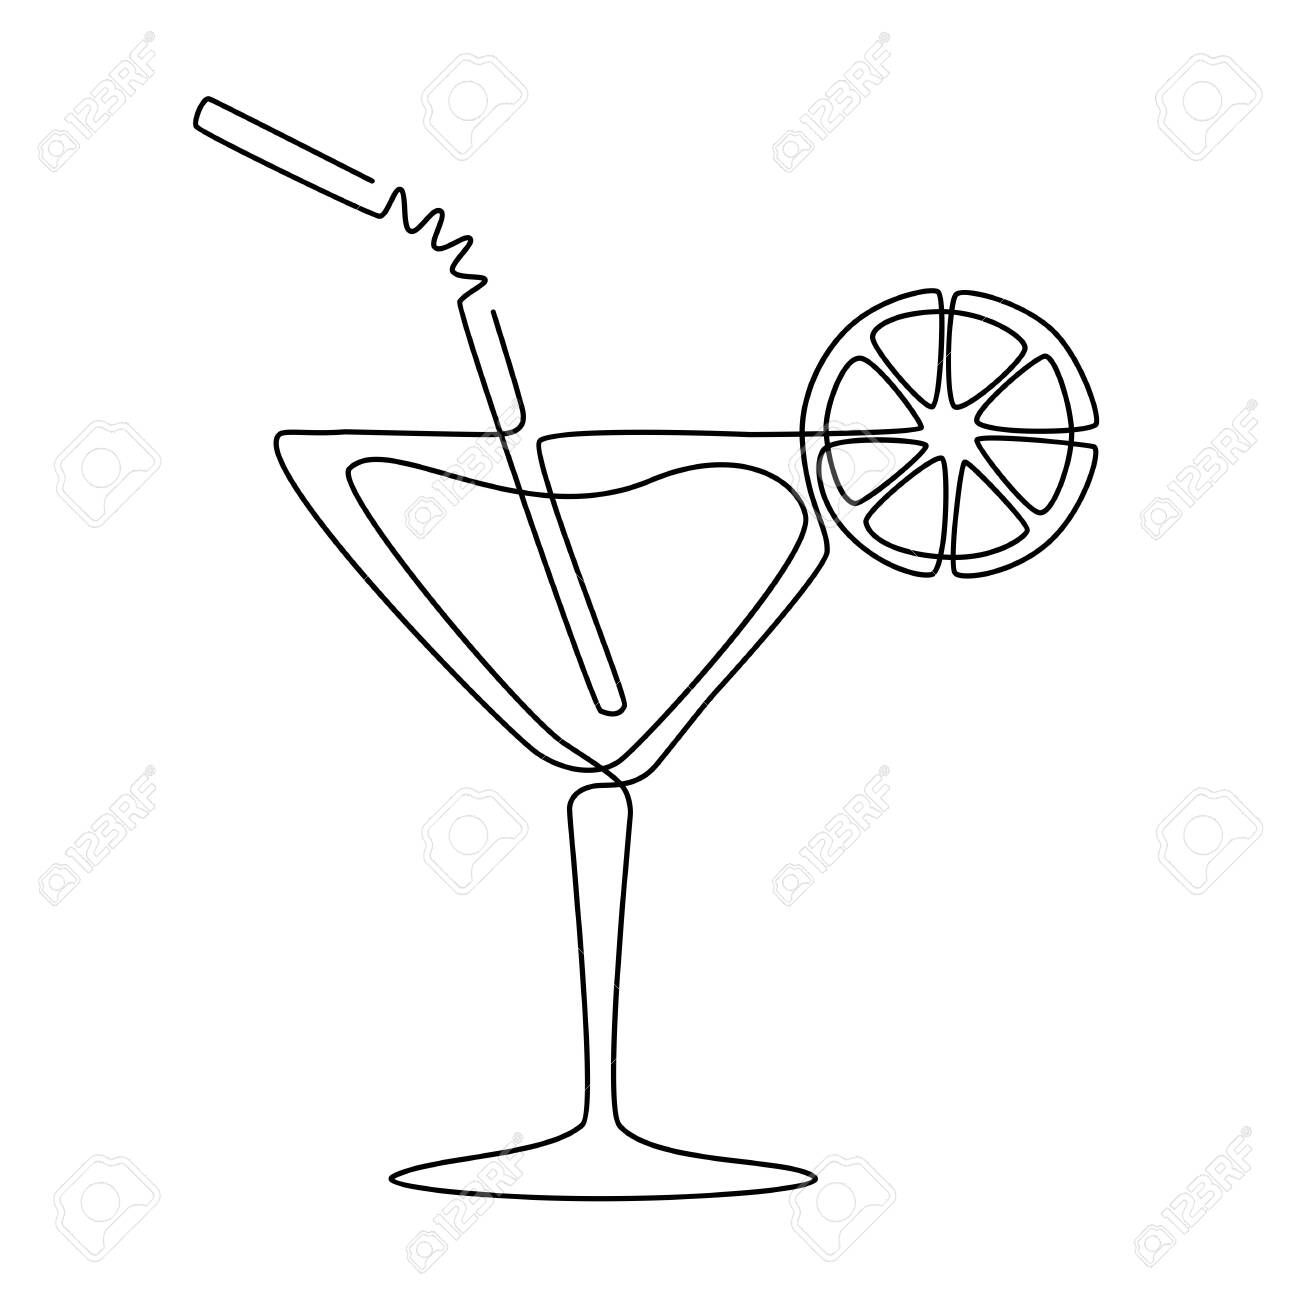 Continuous Line Drawing Of Cocktail Vector Linear Black Illustration Isolated On White Background Sto Line Art Drawings Line Drawing Continuous Line Drawing